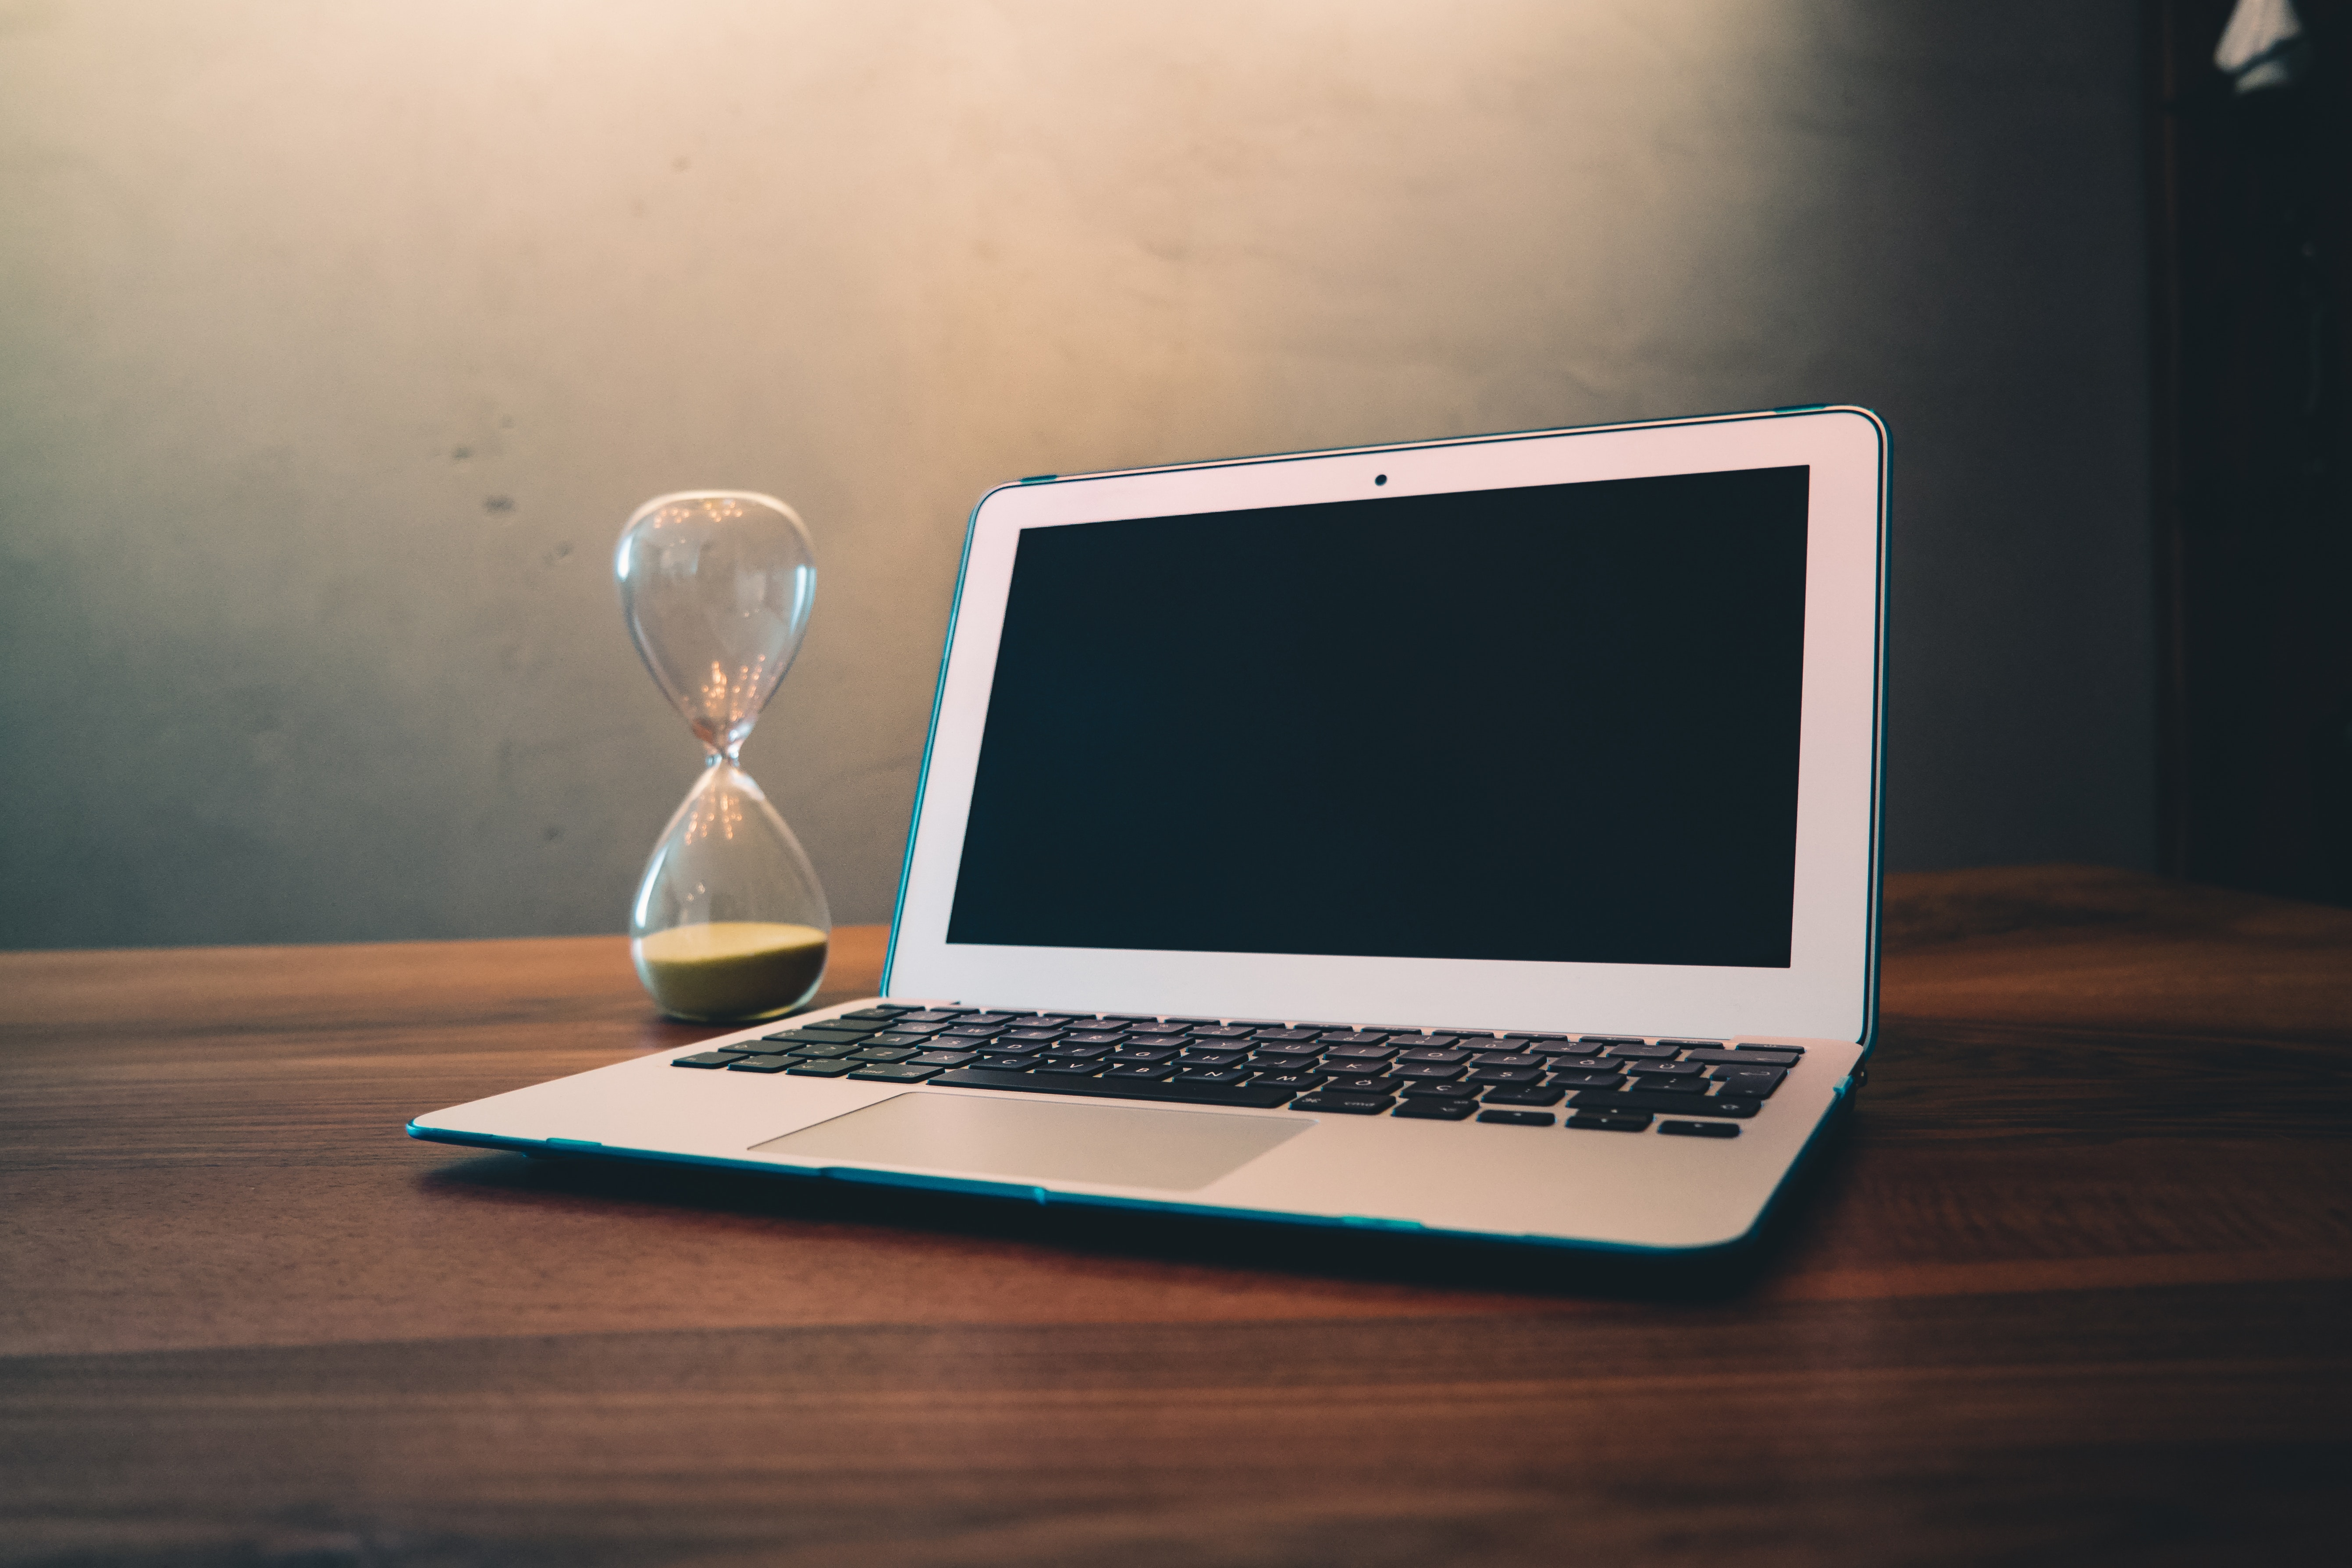 Computer laptop beside hour glass on brown wooden surface photo